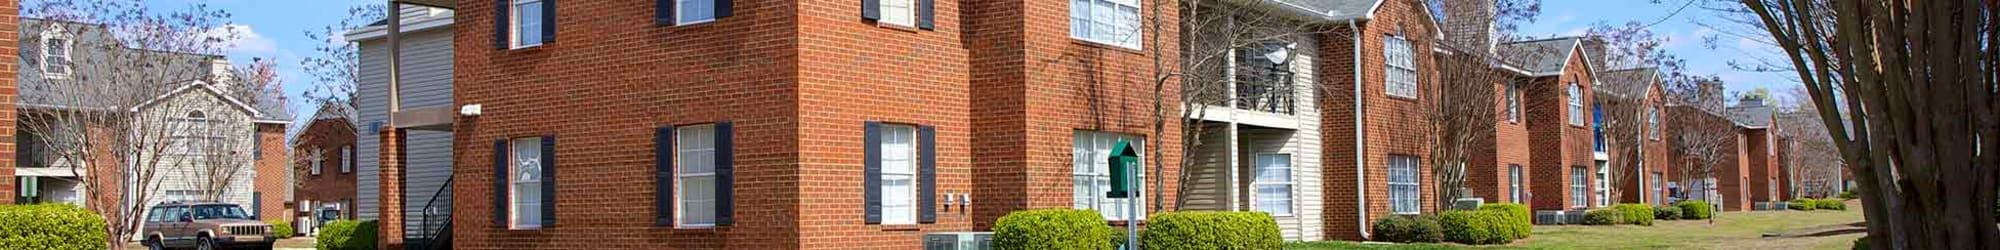 1, 2 & 3 bedrooms offered at apartments in Montgomery